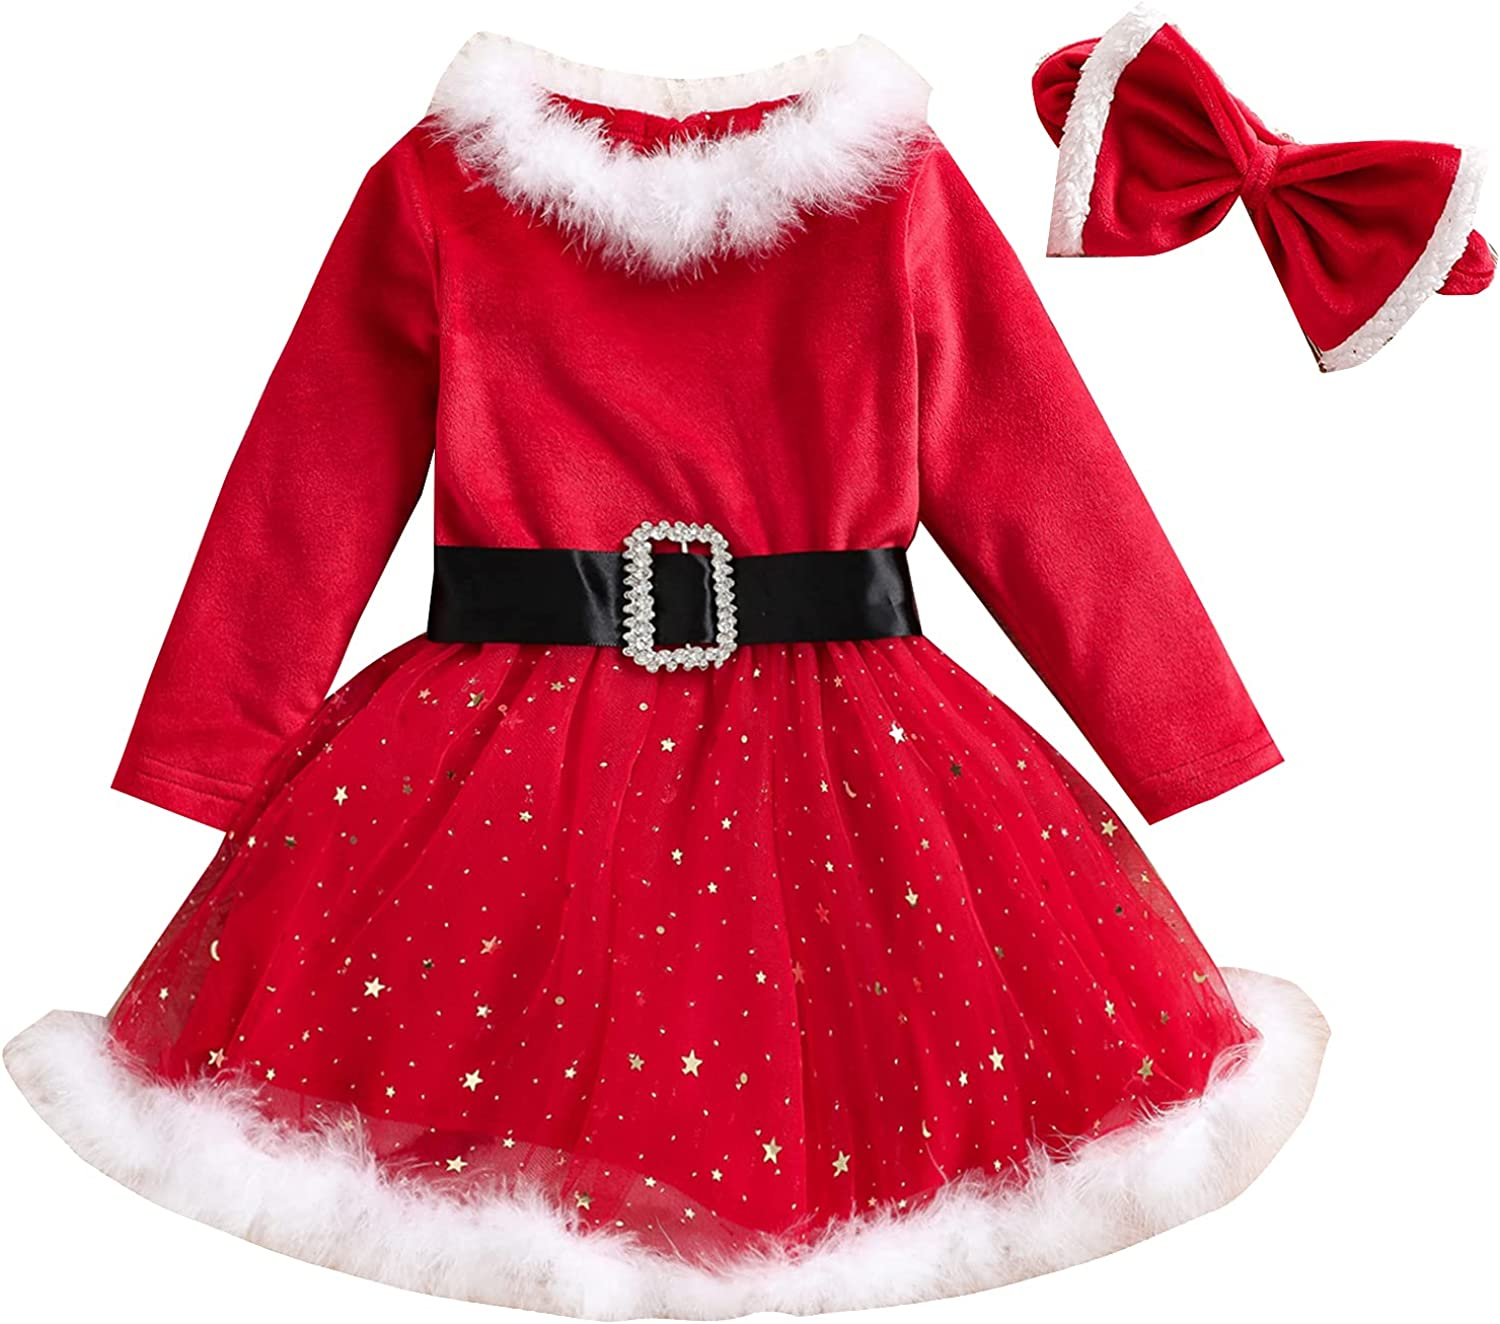 Newborn Baby Special Campaign Girl Christmas Outfit L Sleeveless Dot Polka Halter Miami Mall